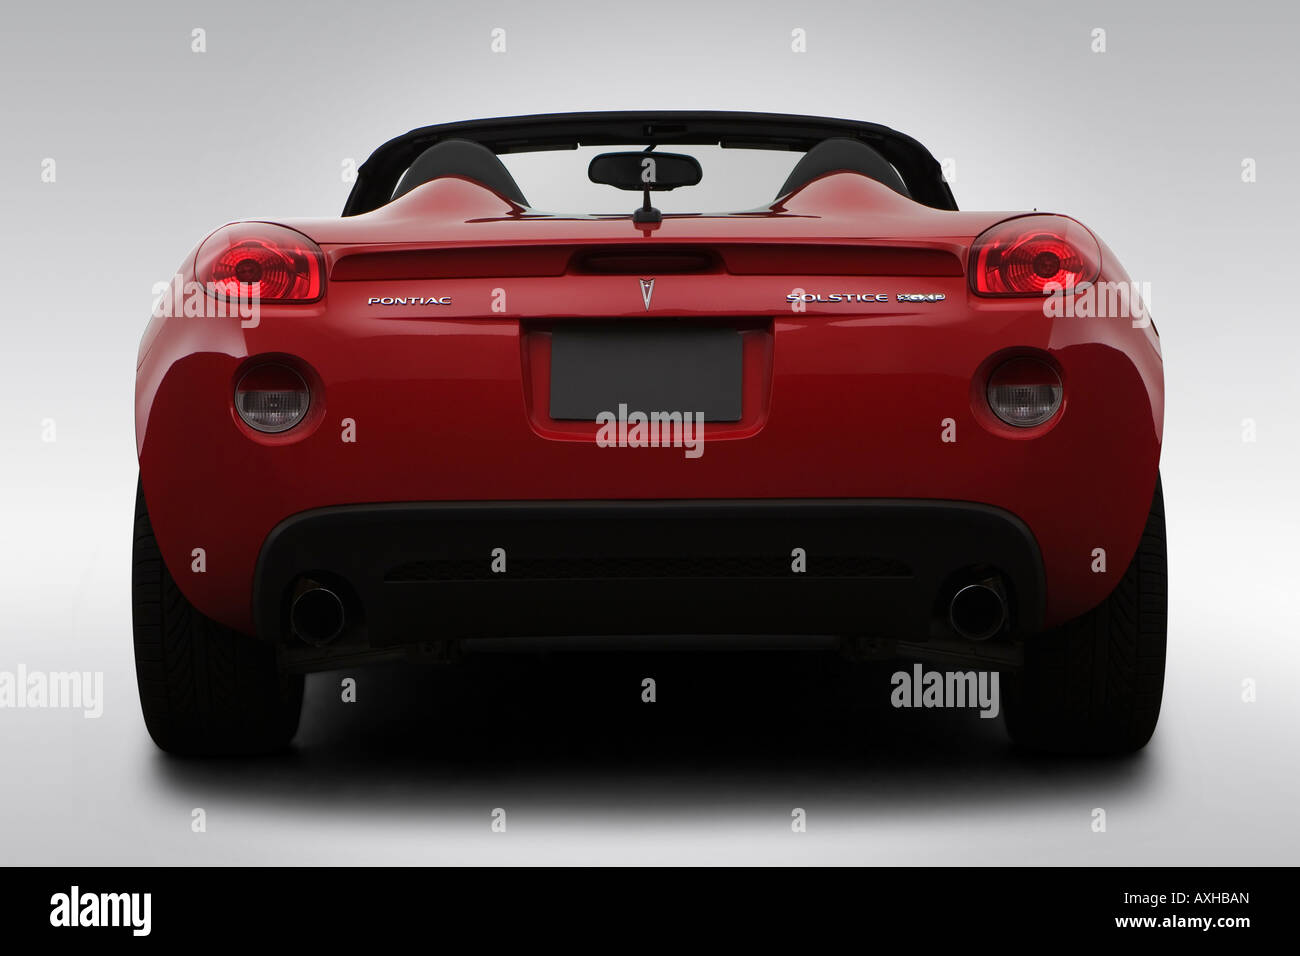 2008 Pontiac Solstice Gxp In Red Low Wide Rear Stock Photo Alamy